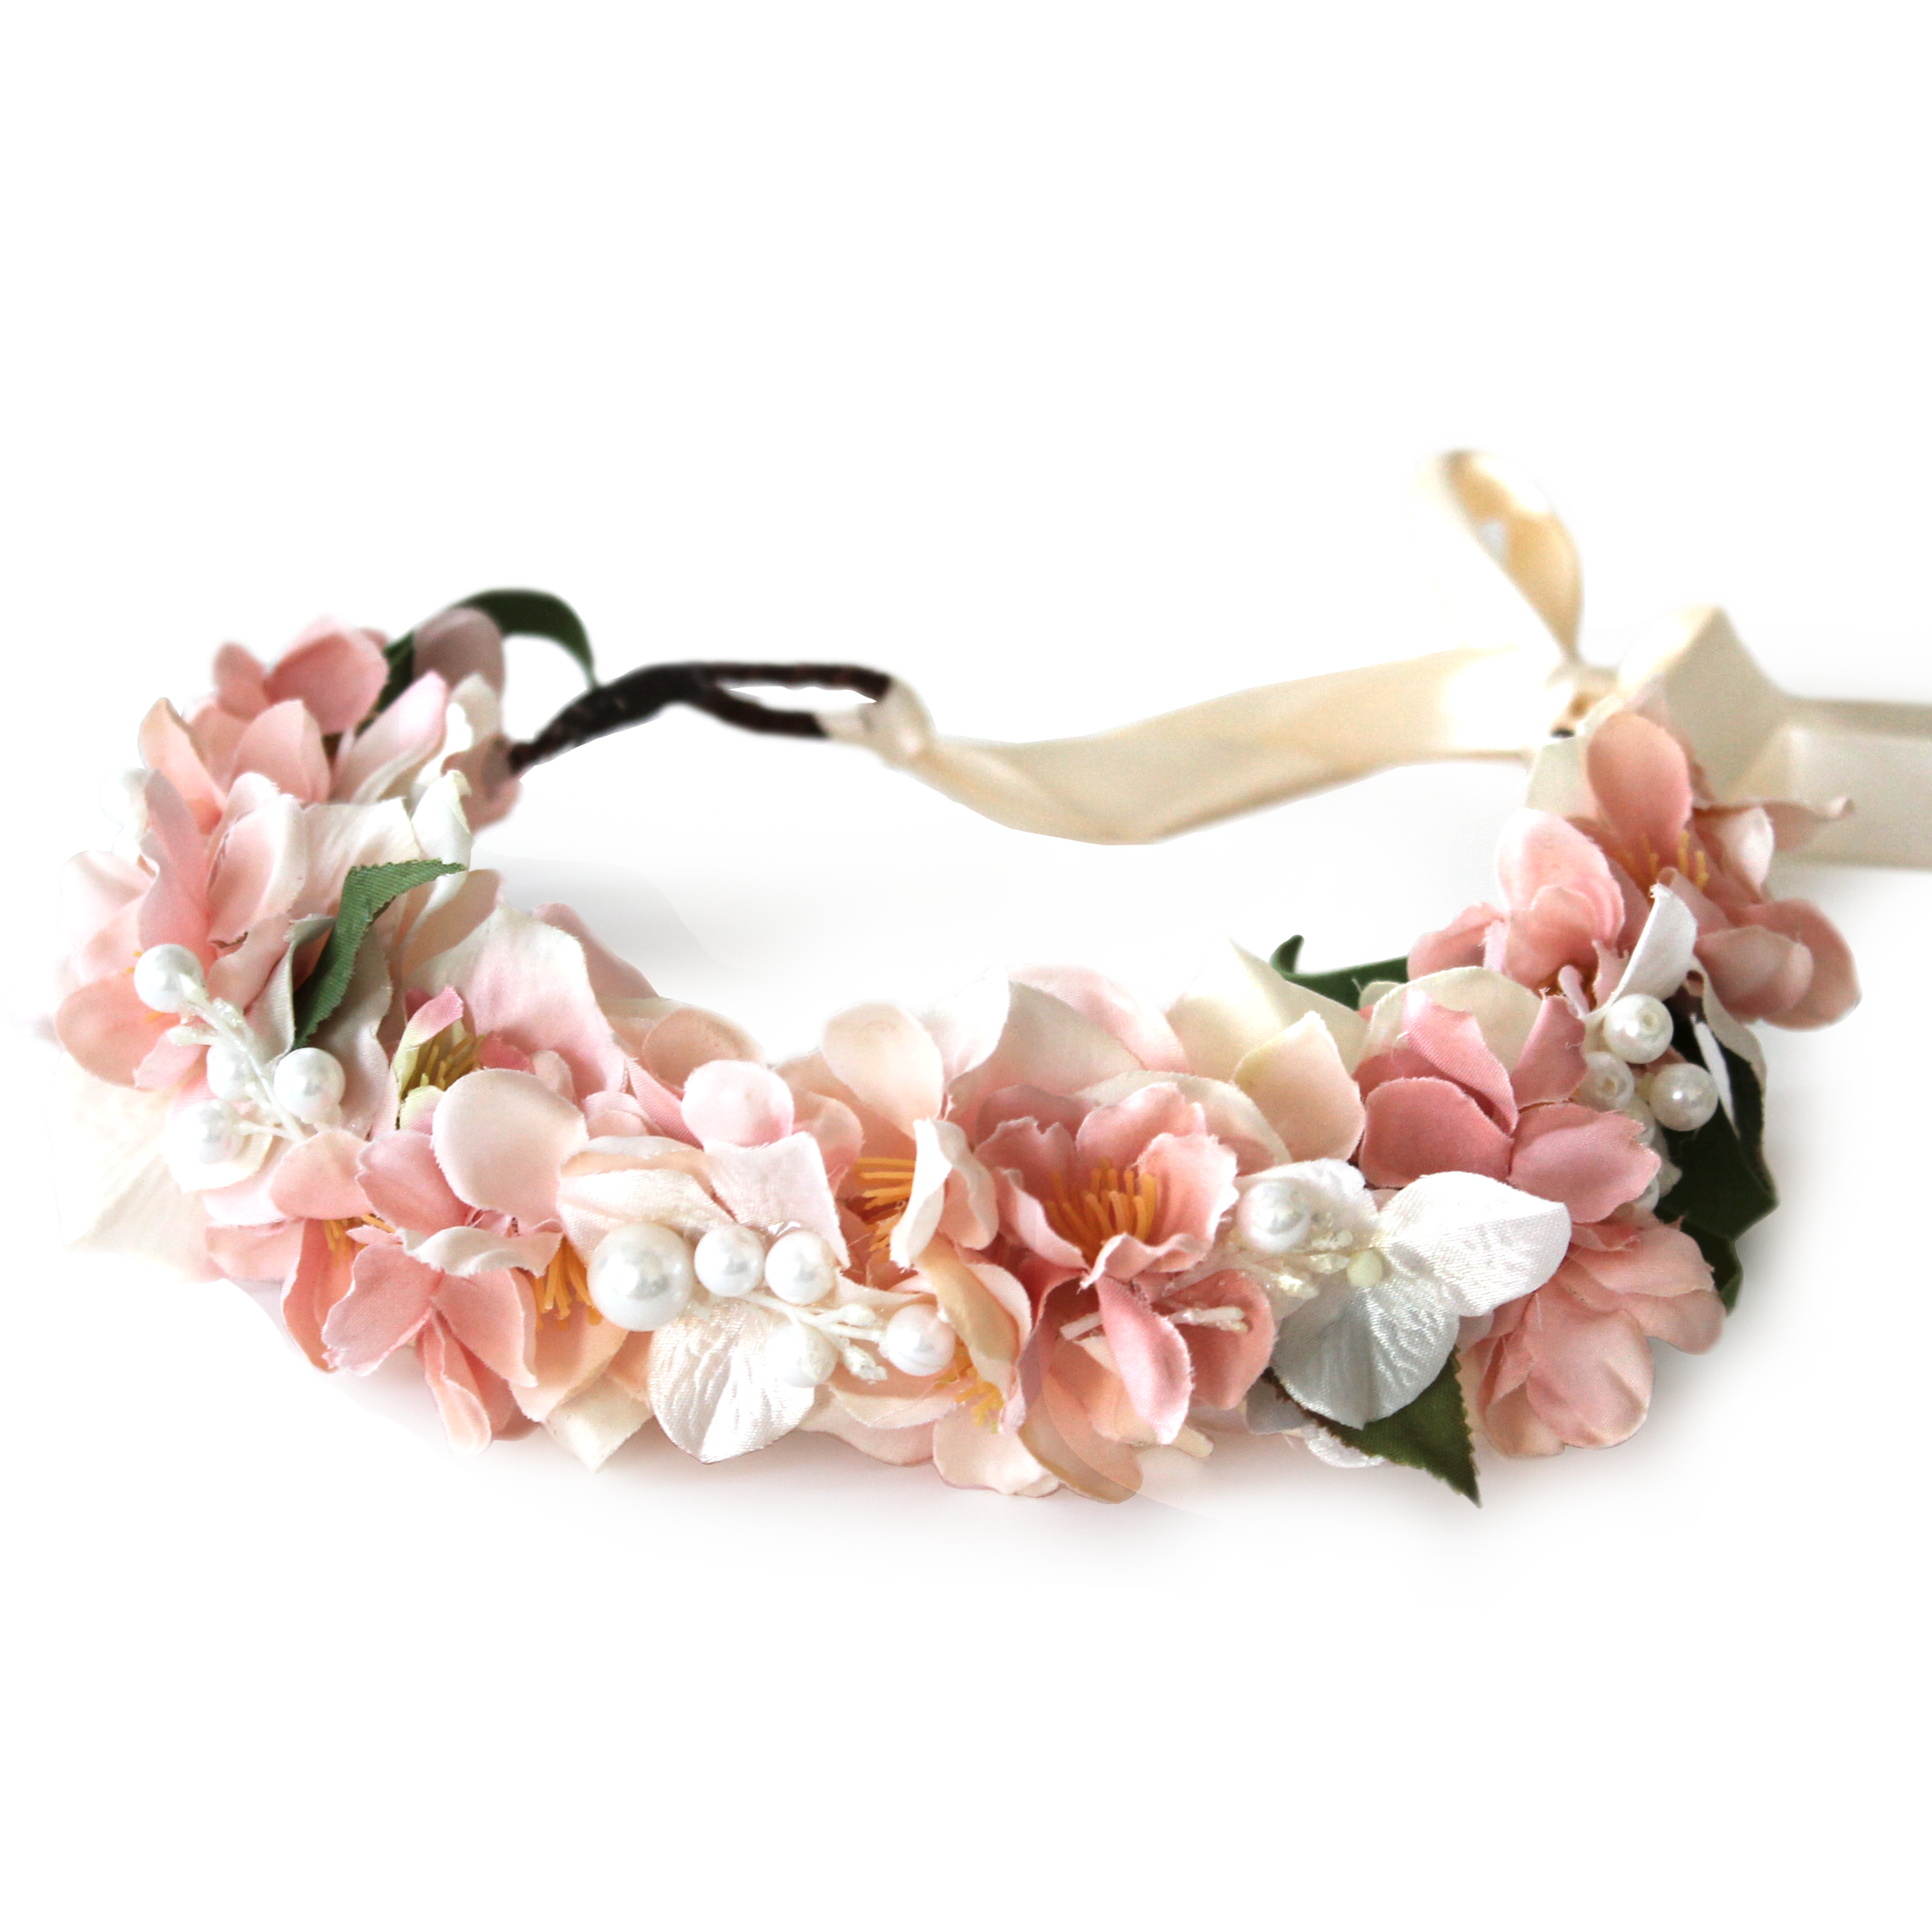 Flower headpiece png. The sophia marie free